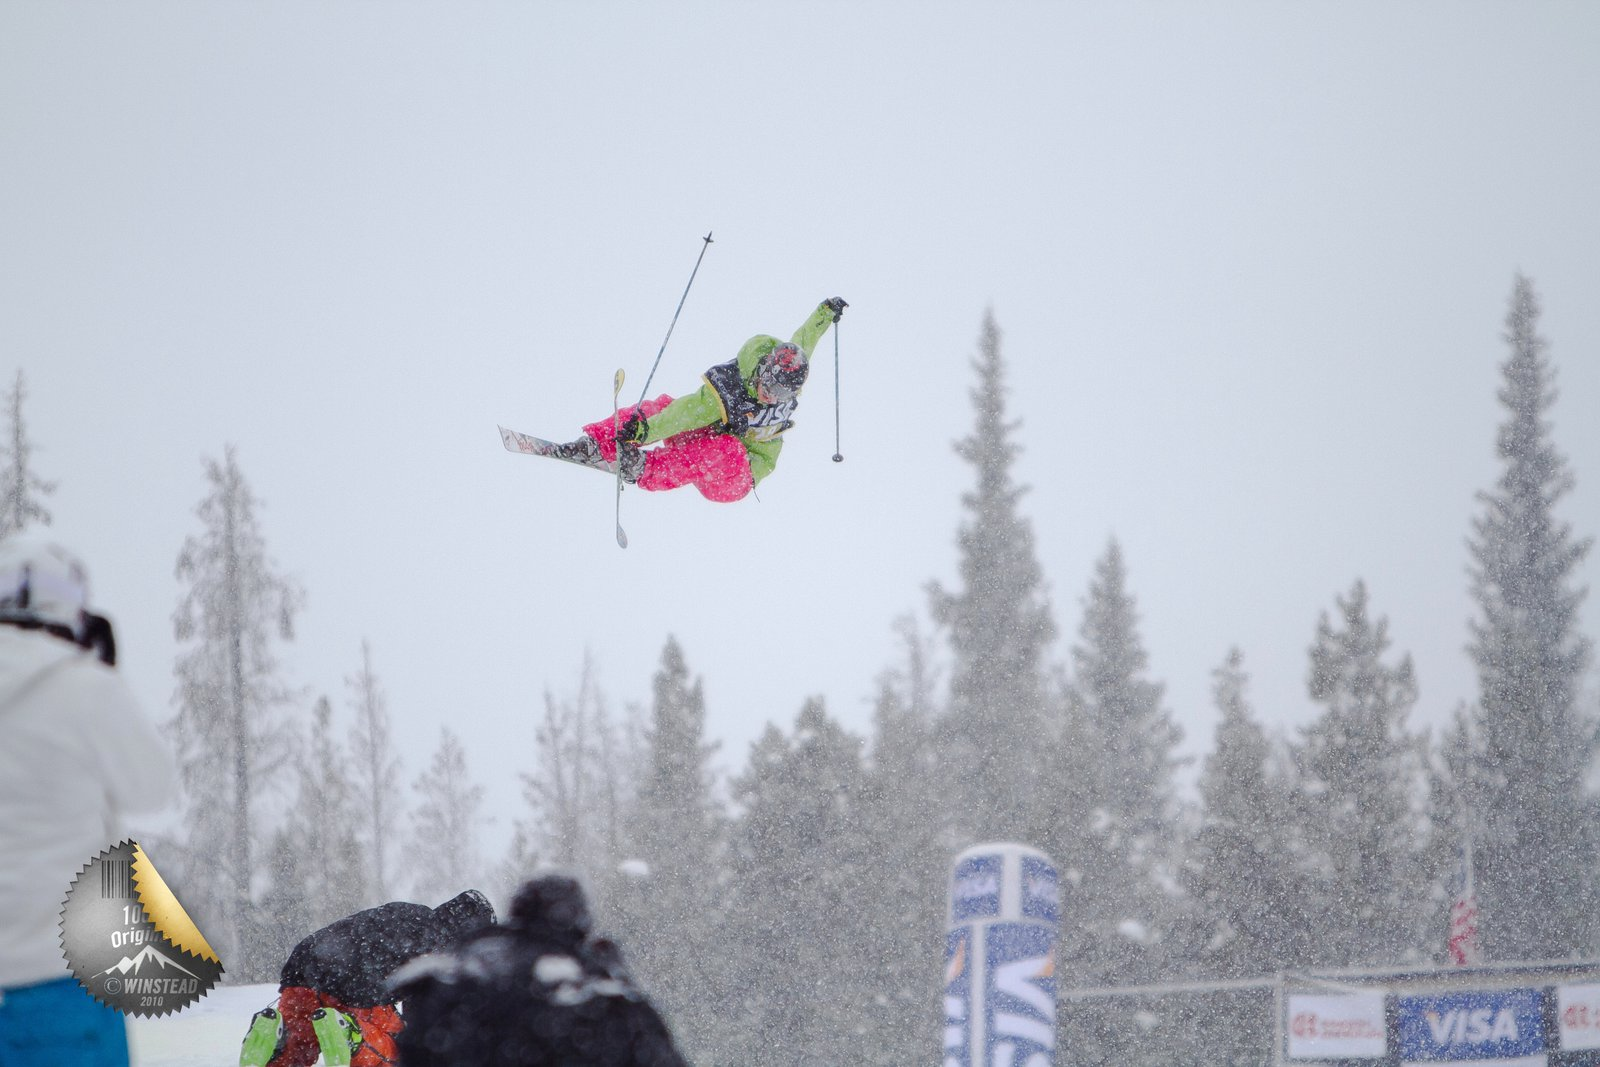 Visa Halfpipe Competition